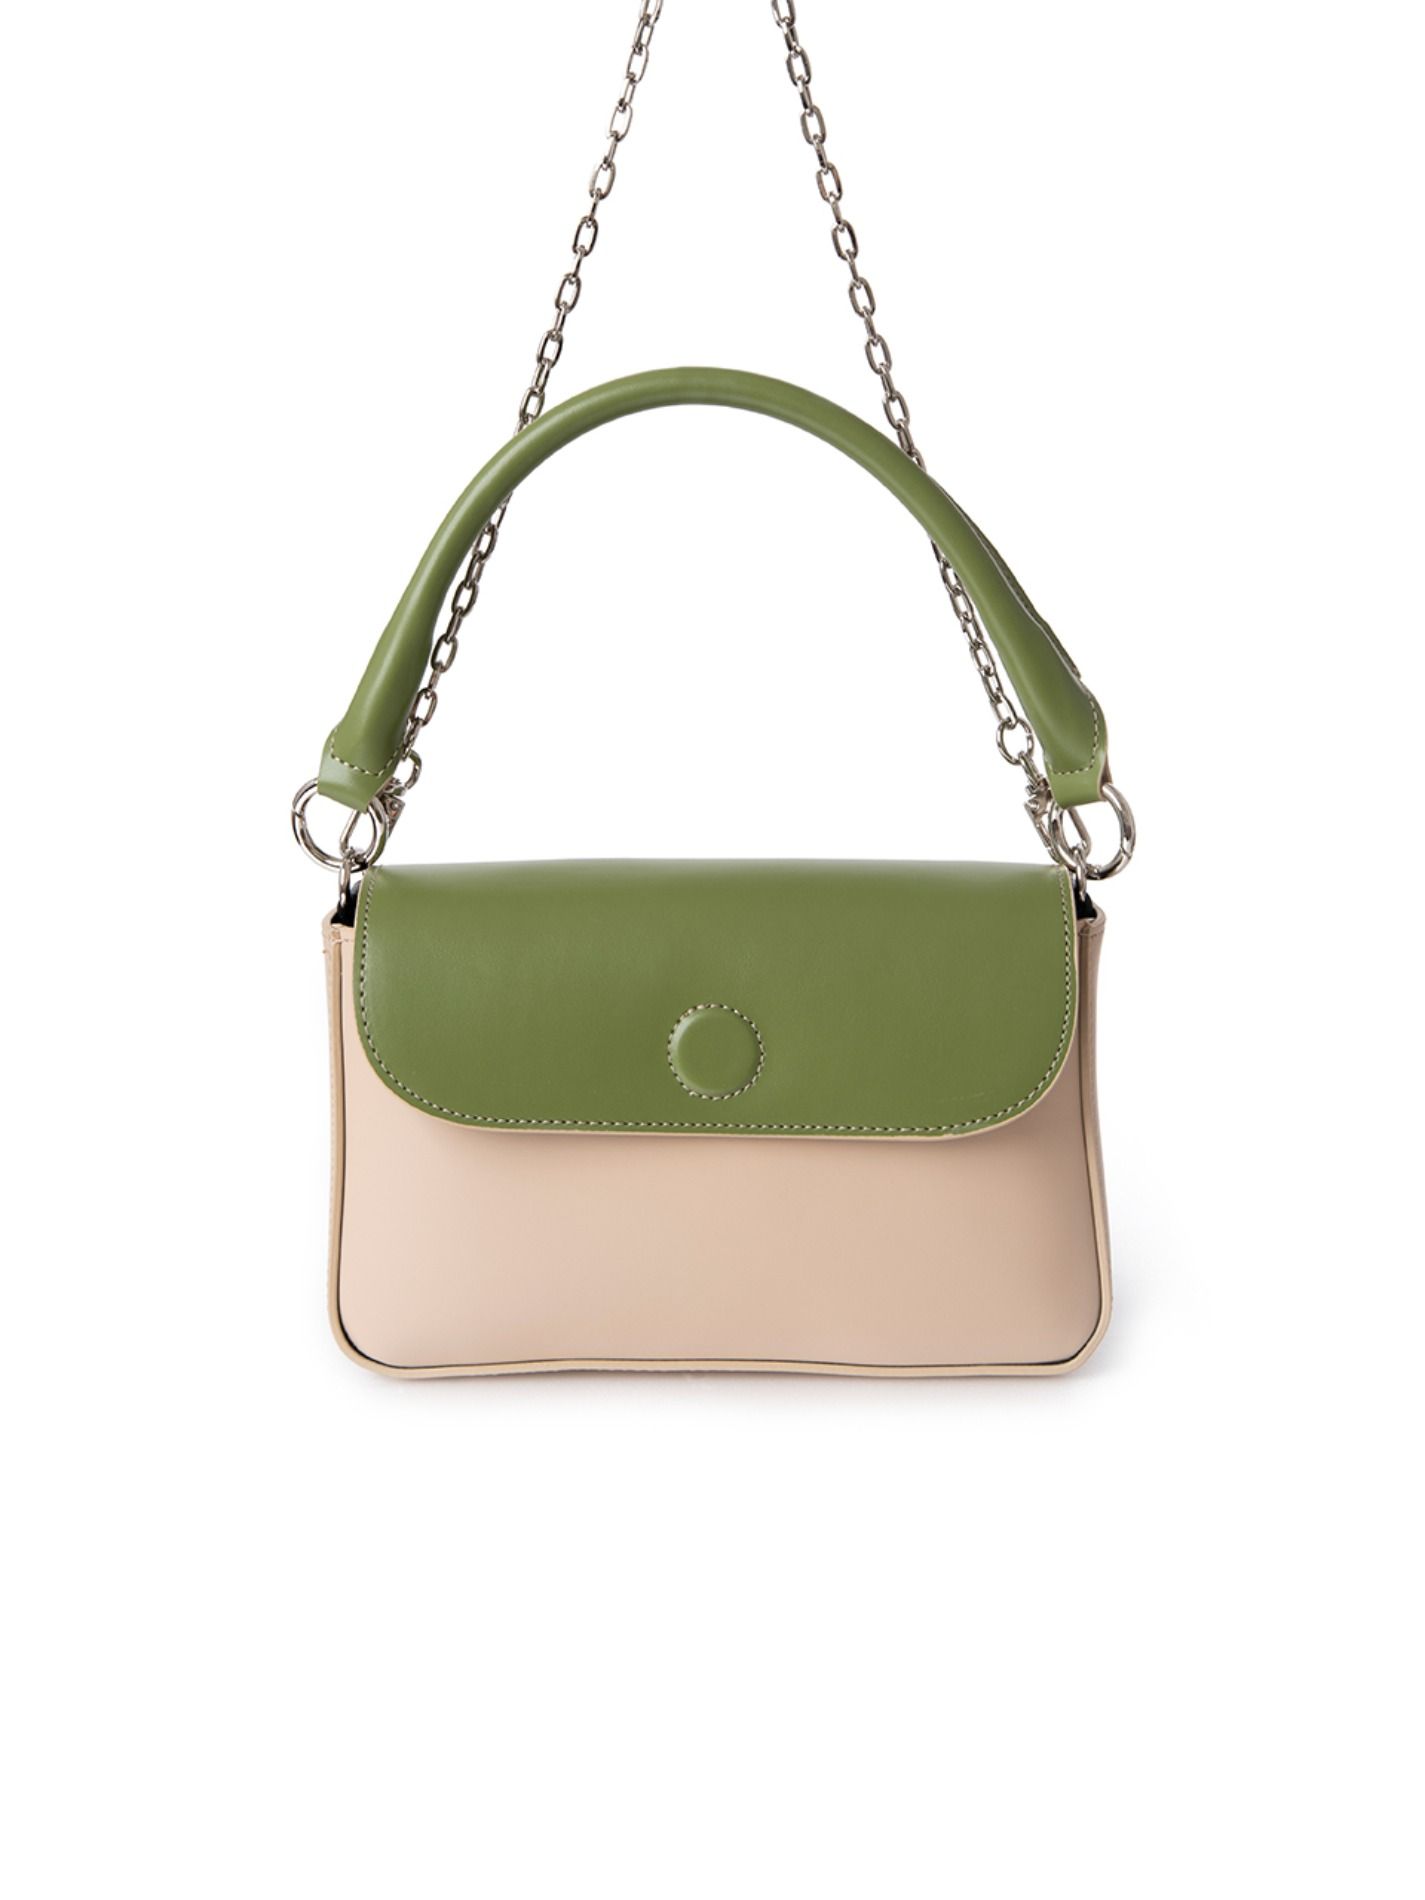 [by Atelier] NANO ROSY BAG_OLIVE GREEN